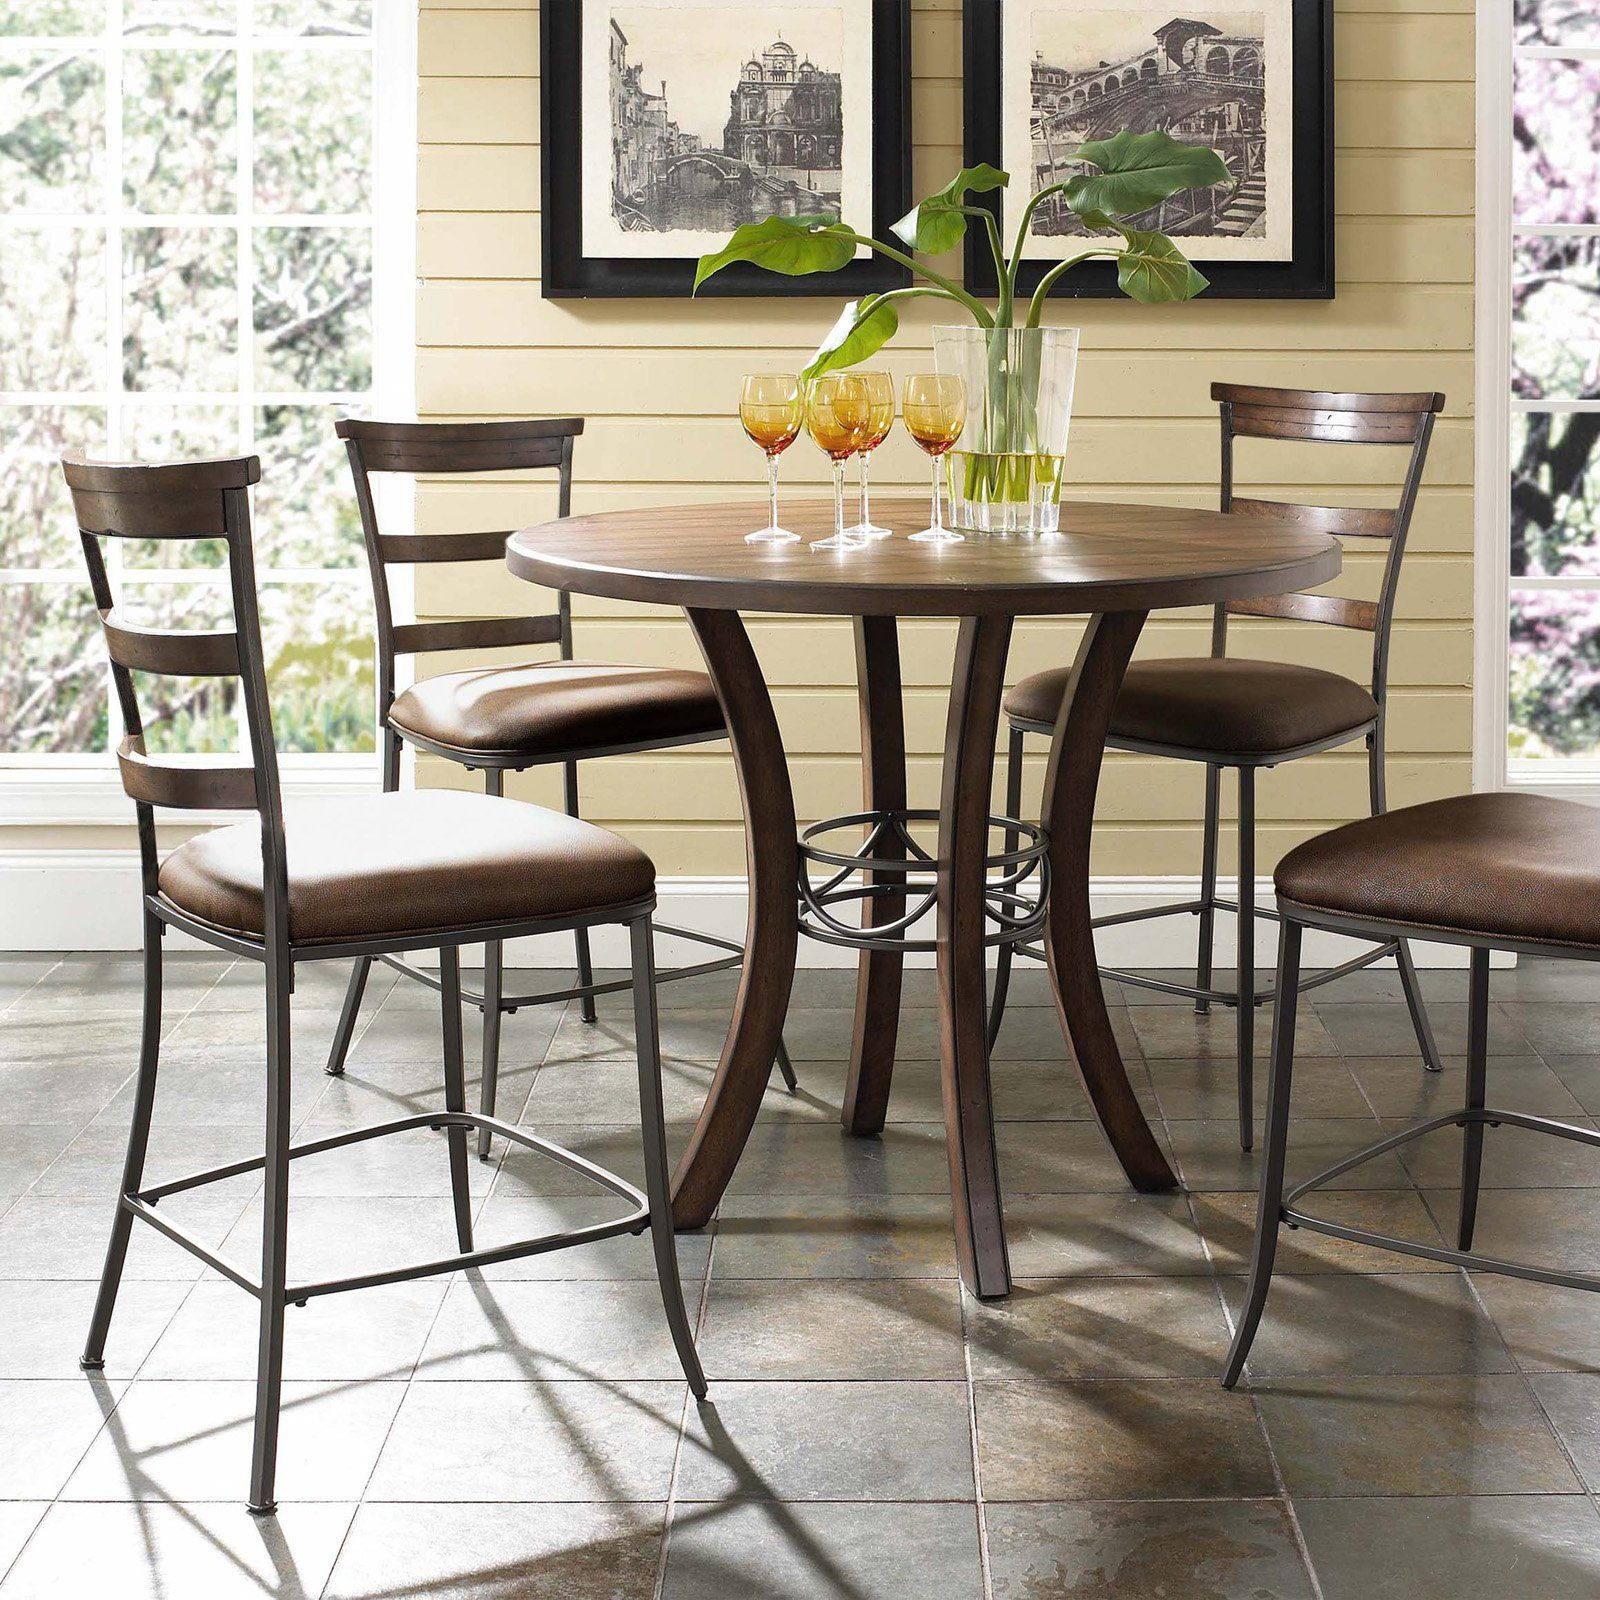 Hillsdale Cameron 5 Piece Counter Height Round Wood Dining Table Set with Ladder…